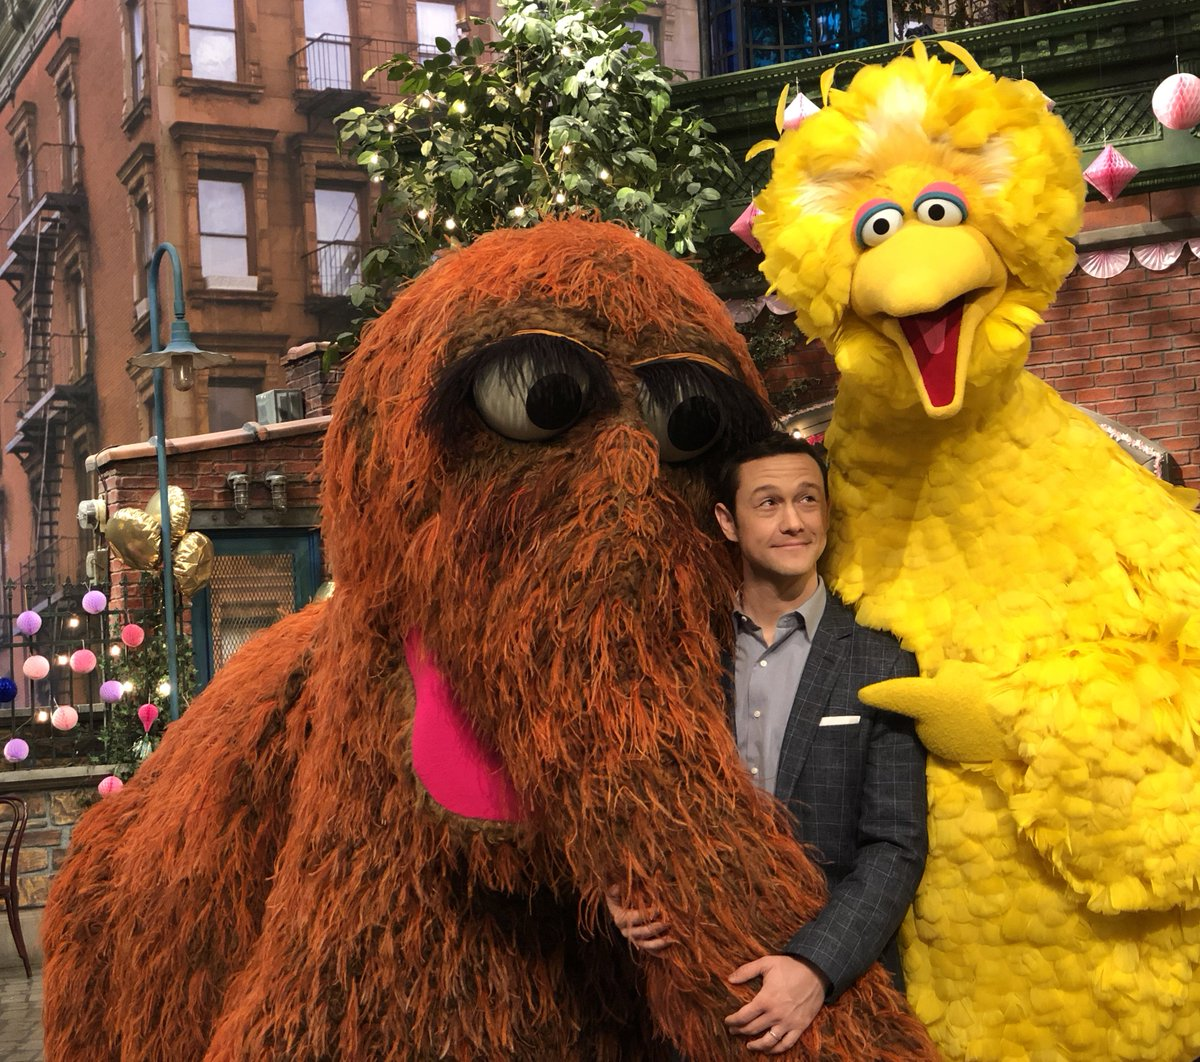 RT @sesamestreet: Hey look! It's our friend Joseph Gordon-Levitt on Sesame Street! ???? #Sesame50 @hitRECordJoe https://t.co/9K6D7mojHK